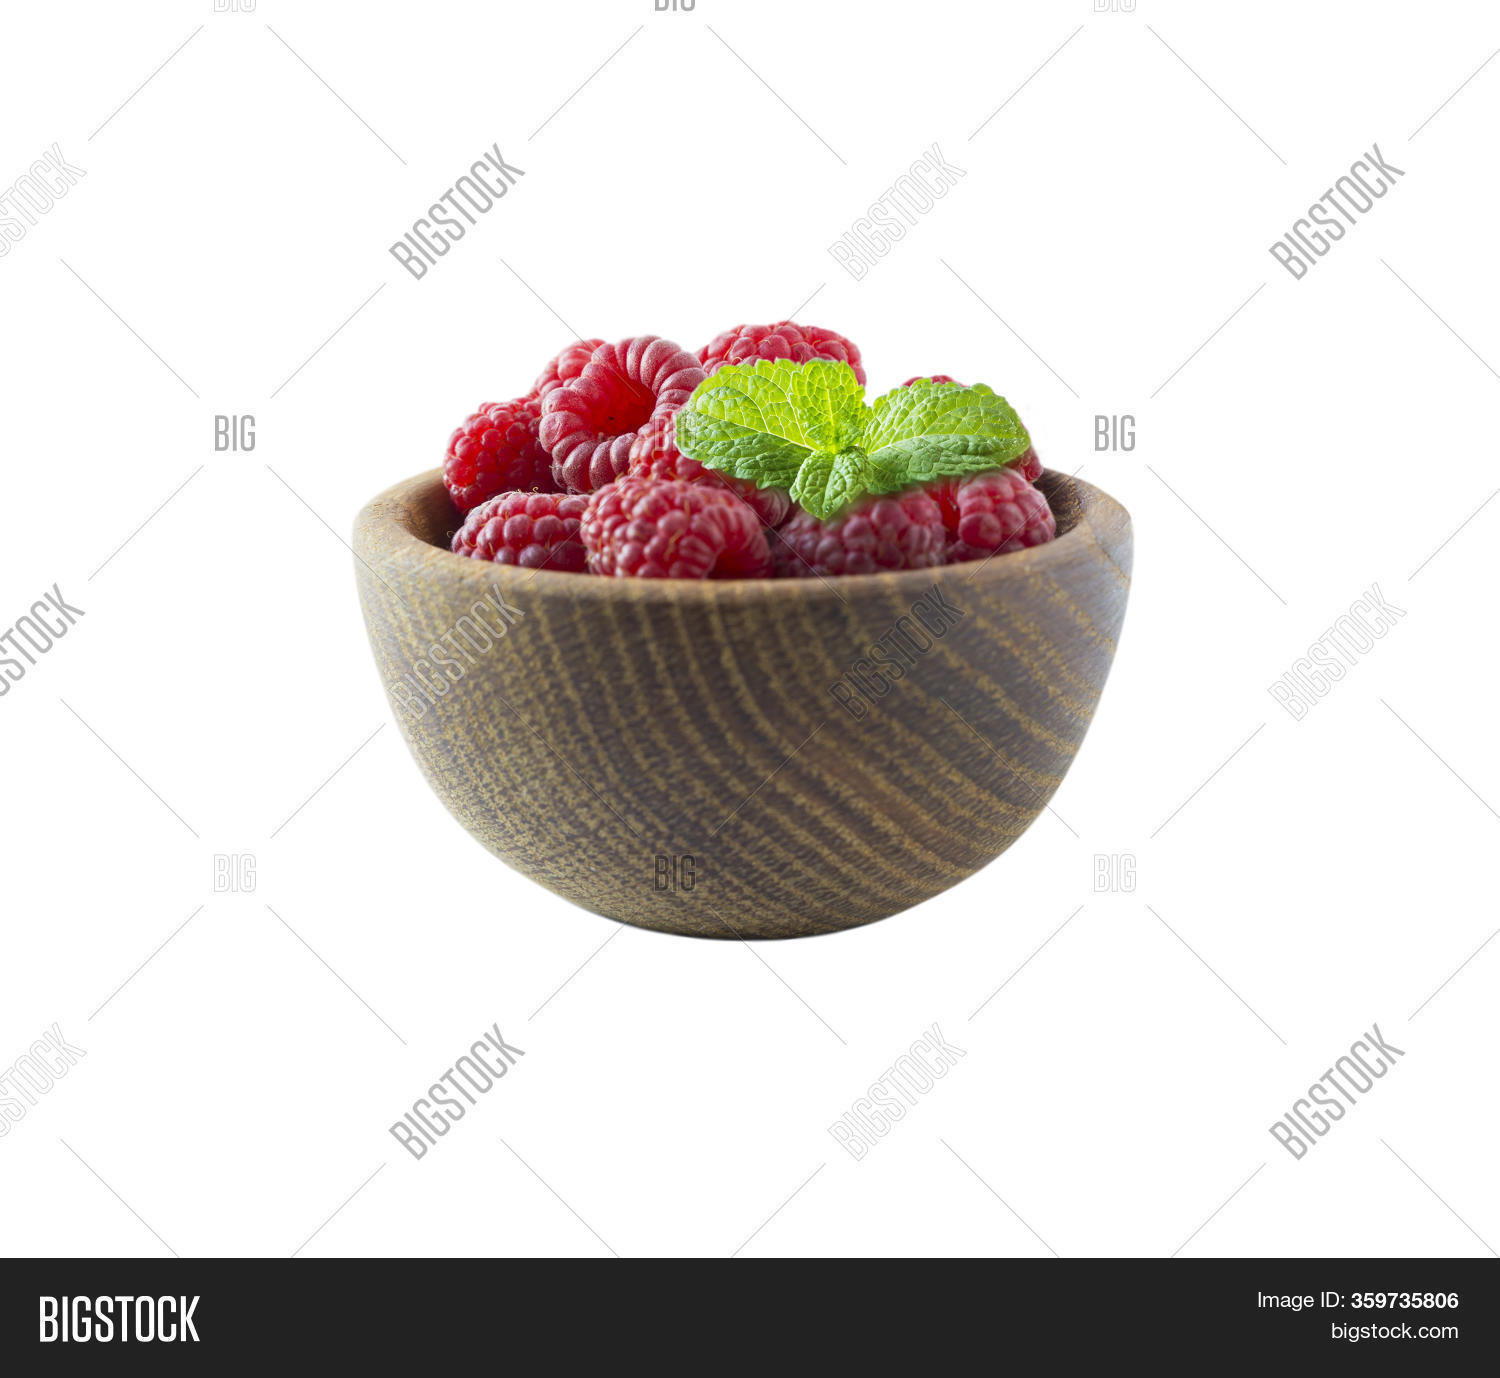 Raspberries Isolated On White Background. Raspberries On Wooden Bowl. Raspberry With Copy Space For